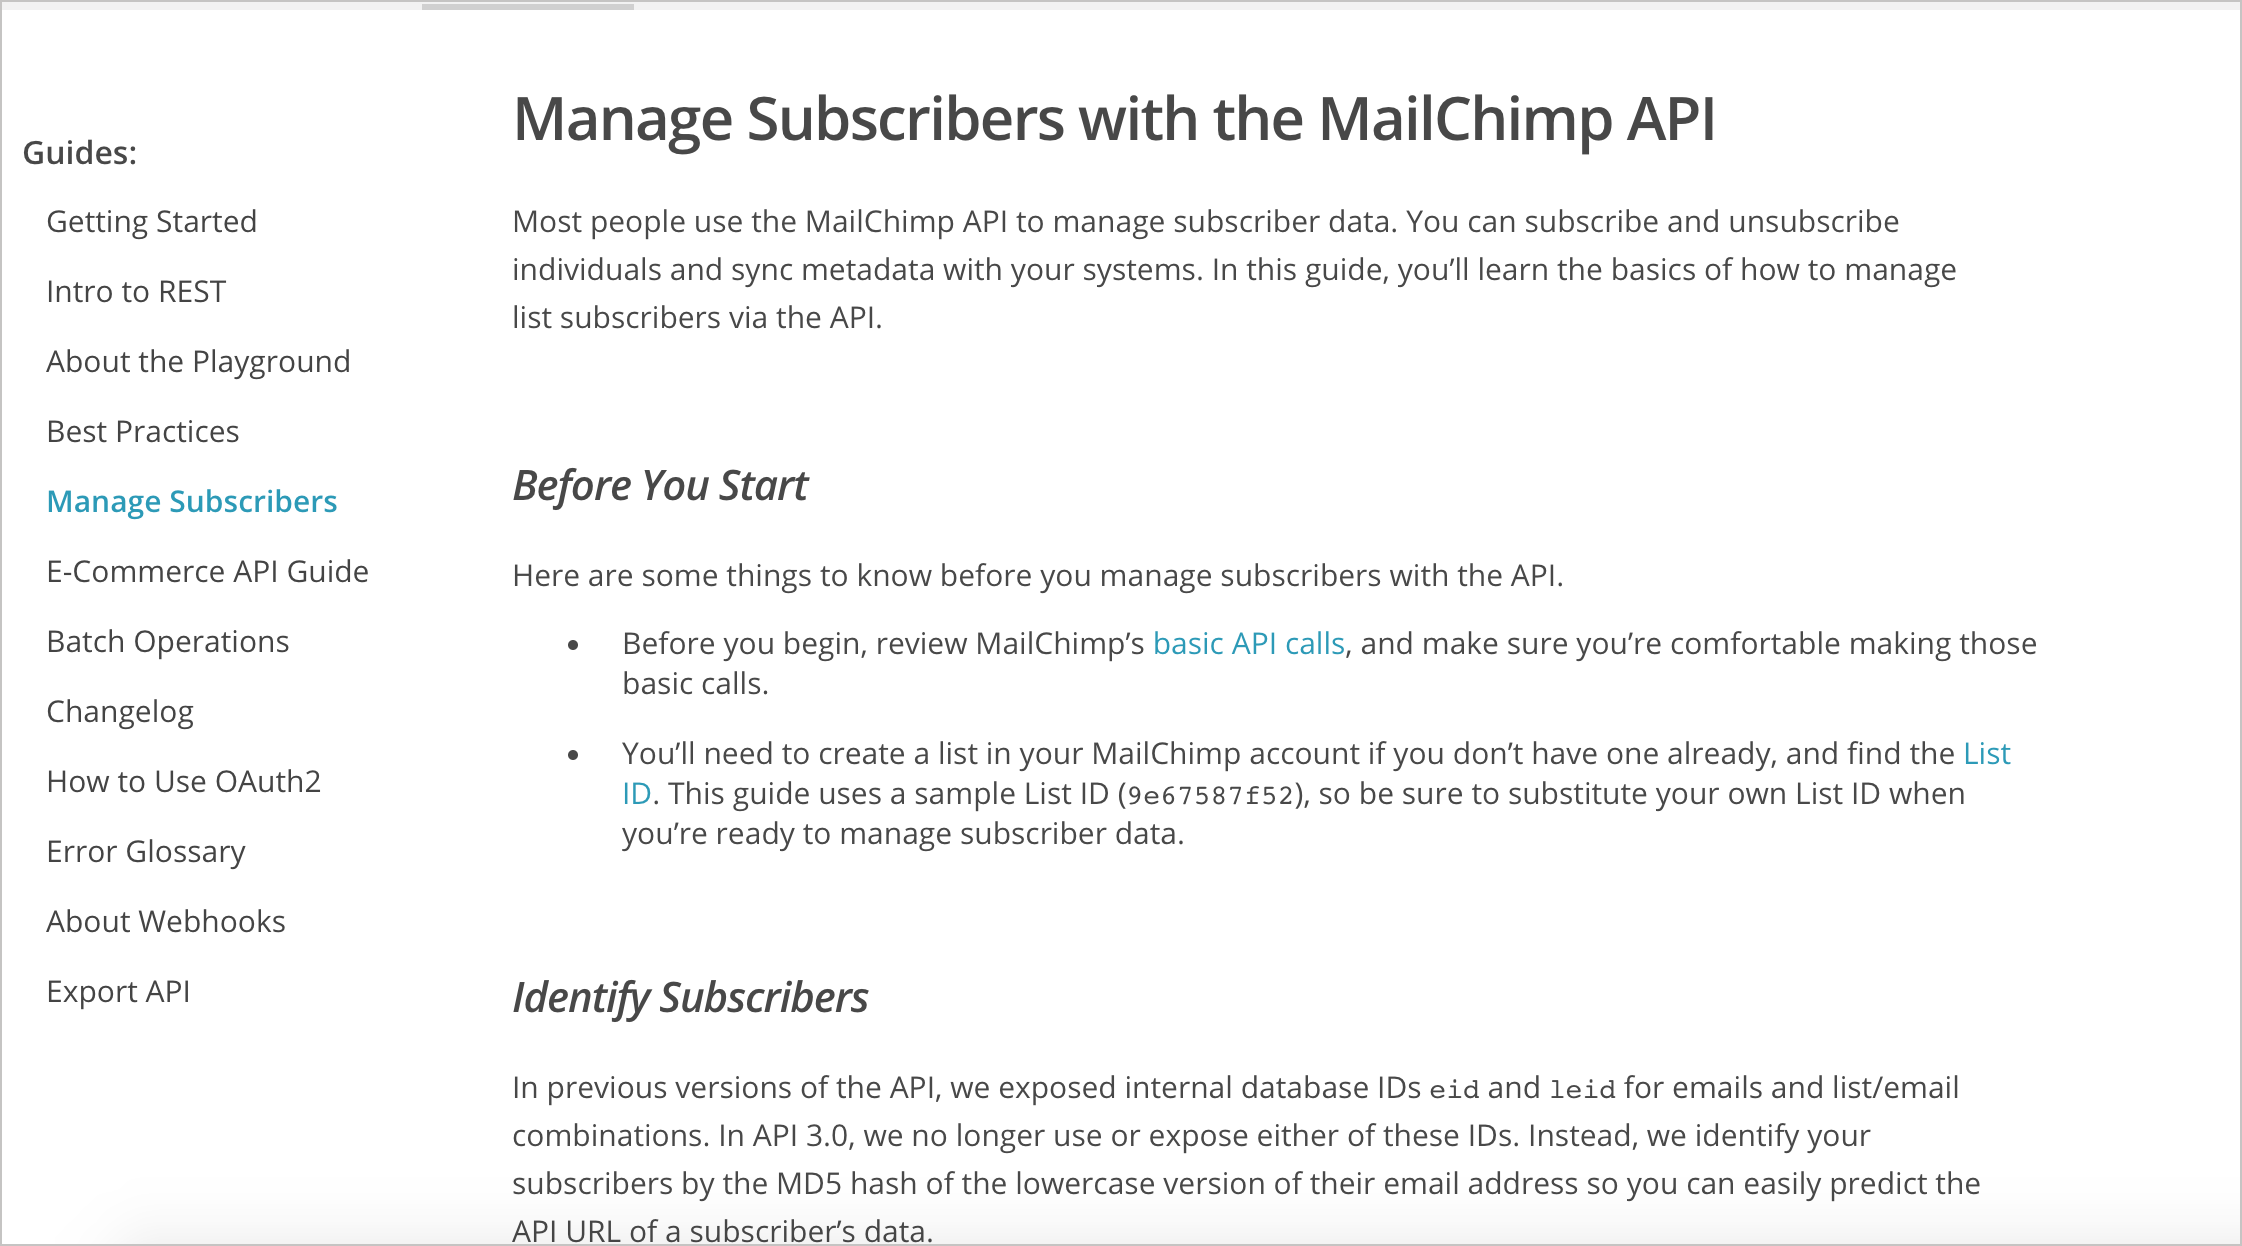 Mailchimp code samples